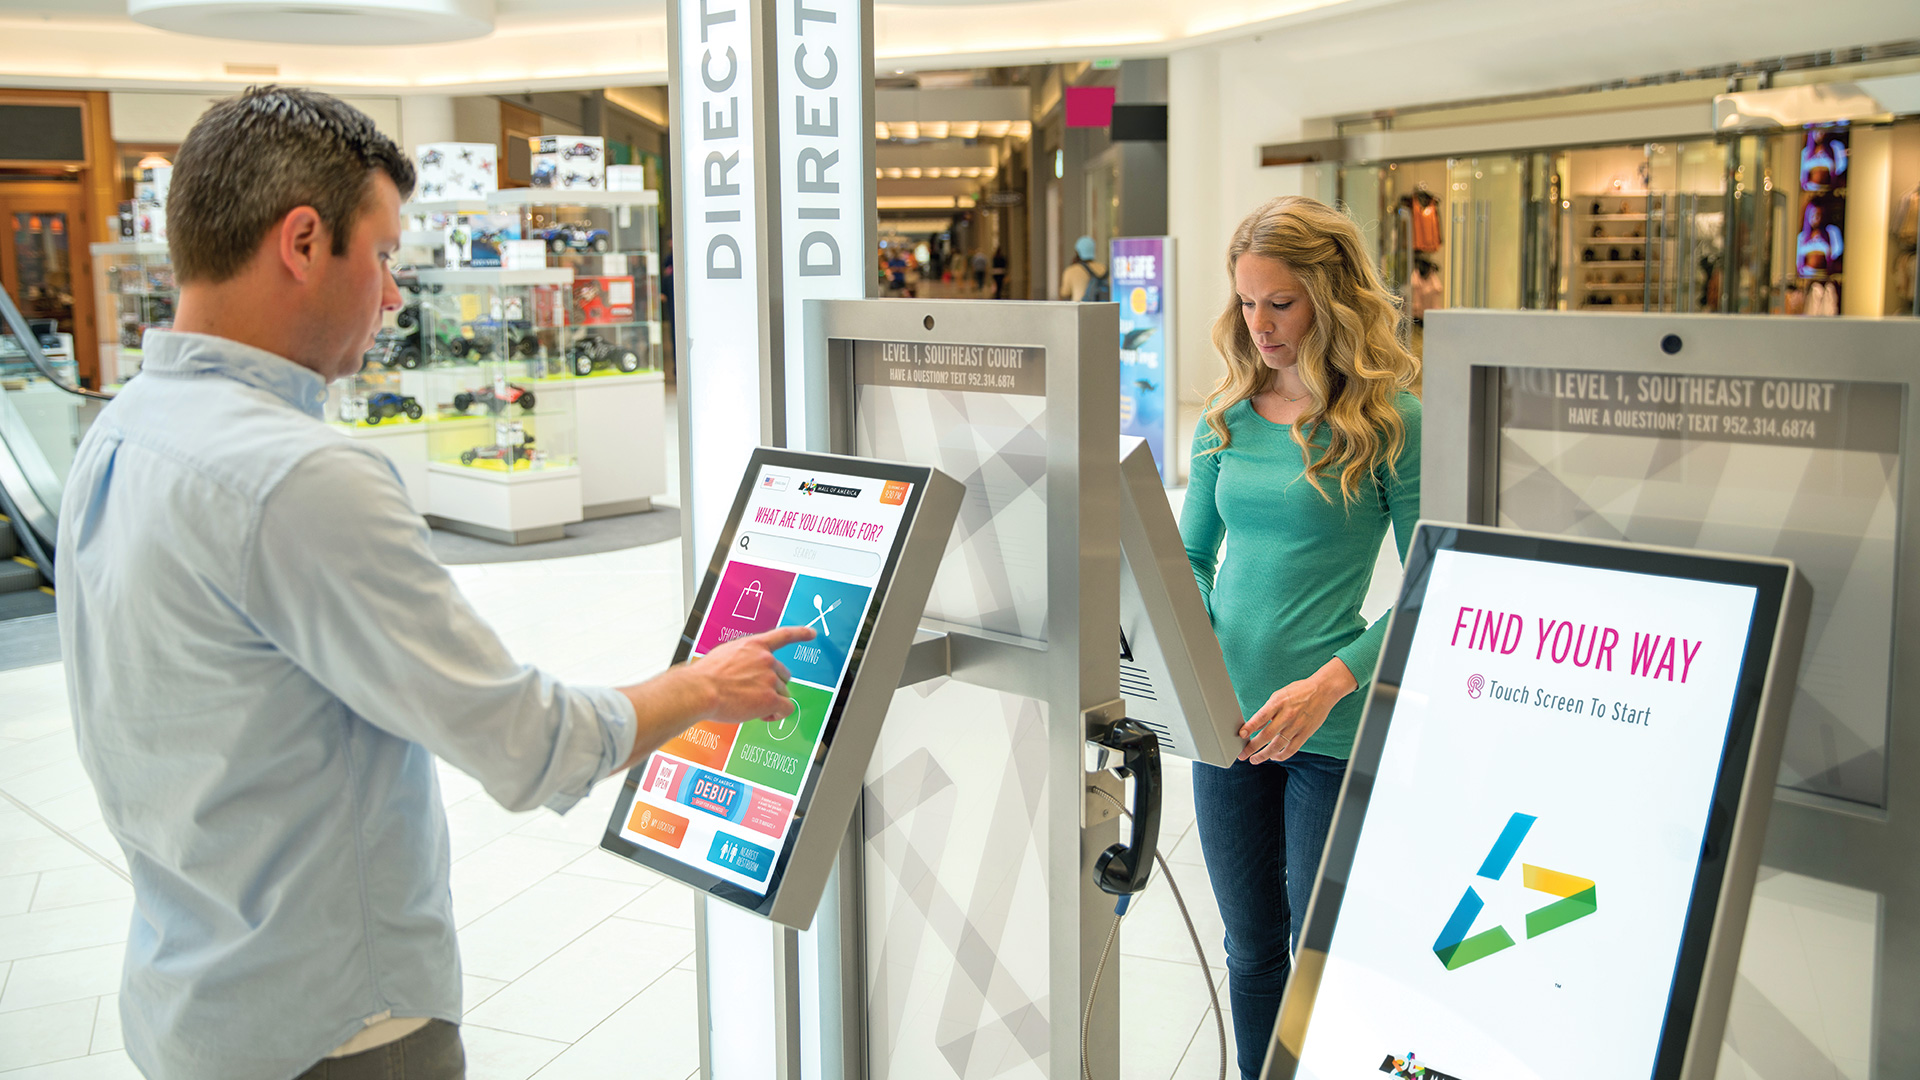 A guy and a girl standing across from each other using the interactive wayfinding kiosks at the Mall of America